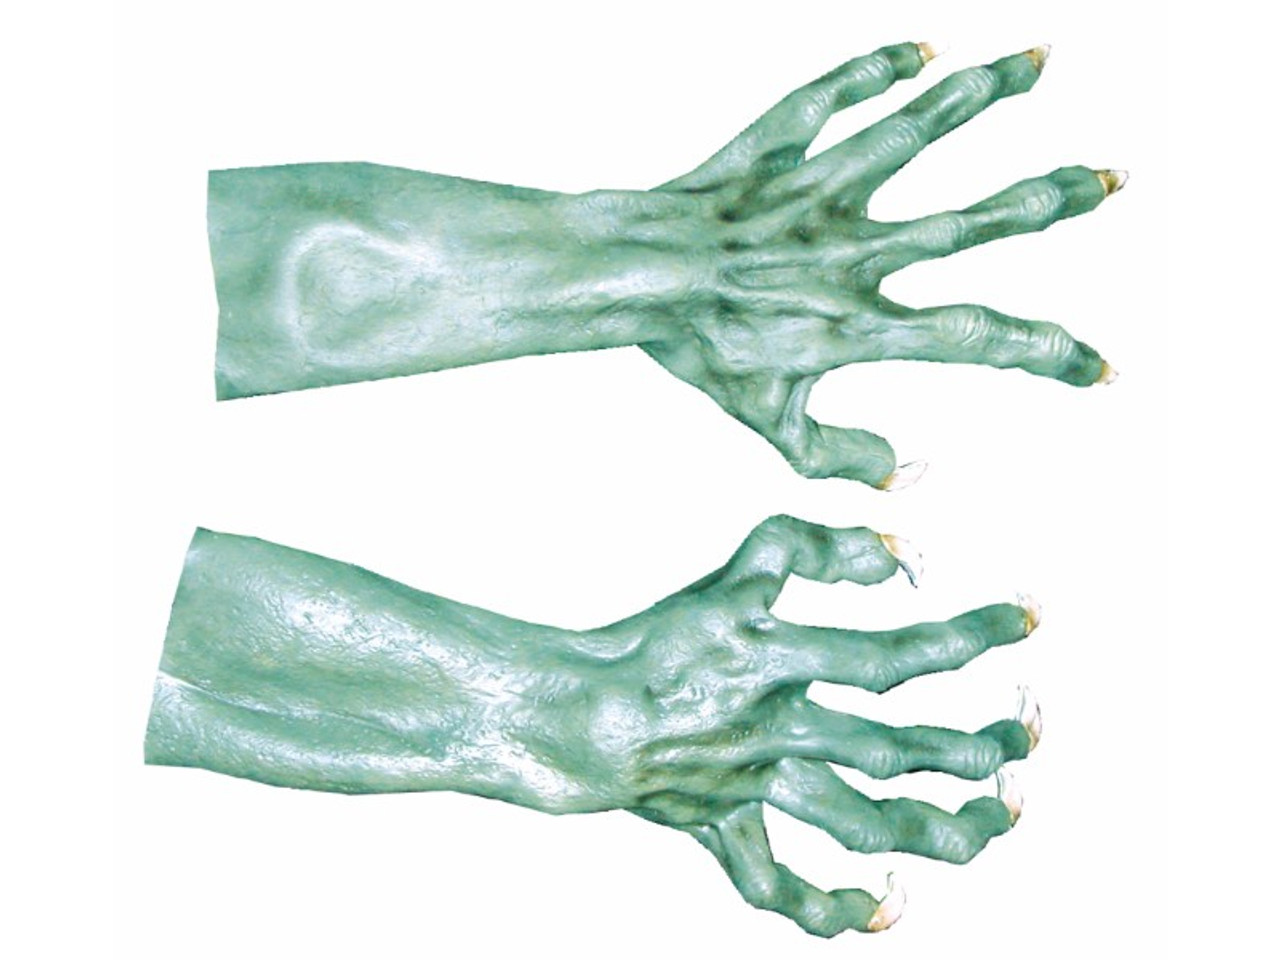 An extreme costume look with the Ultimate Monster Hands! Fits snug over your own hands  sc 1 st  House Of Hauntz & Large Monster Hands | An Assortment Of Costume Horror